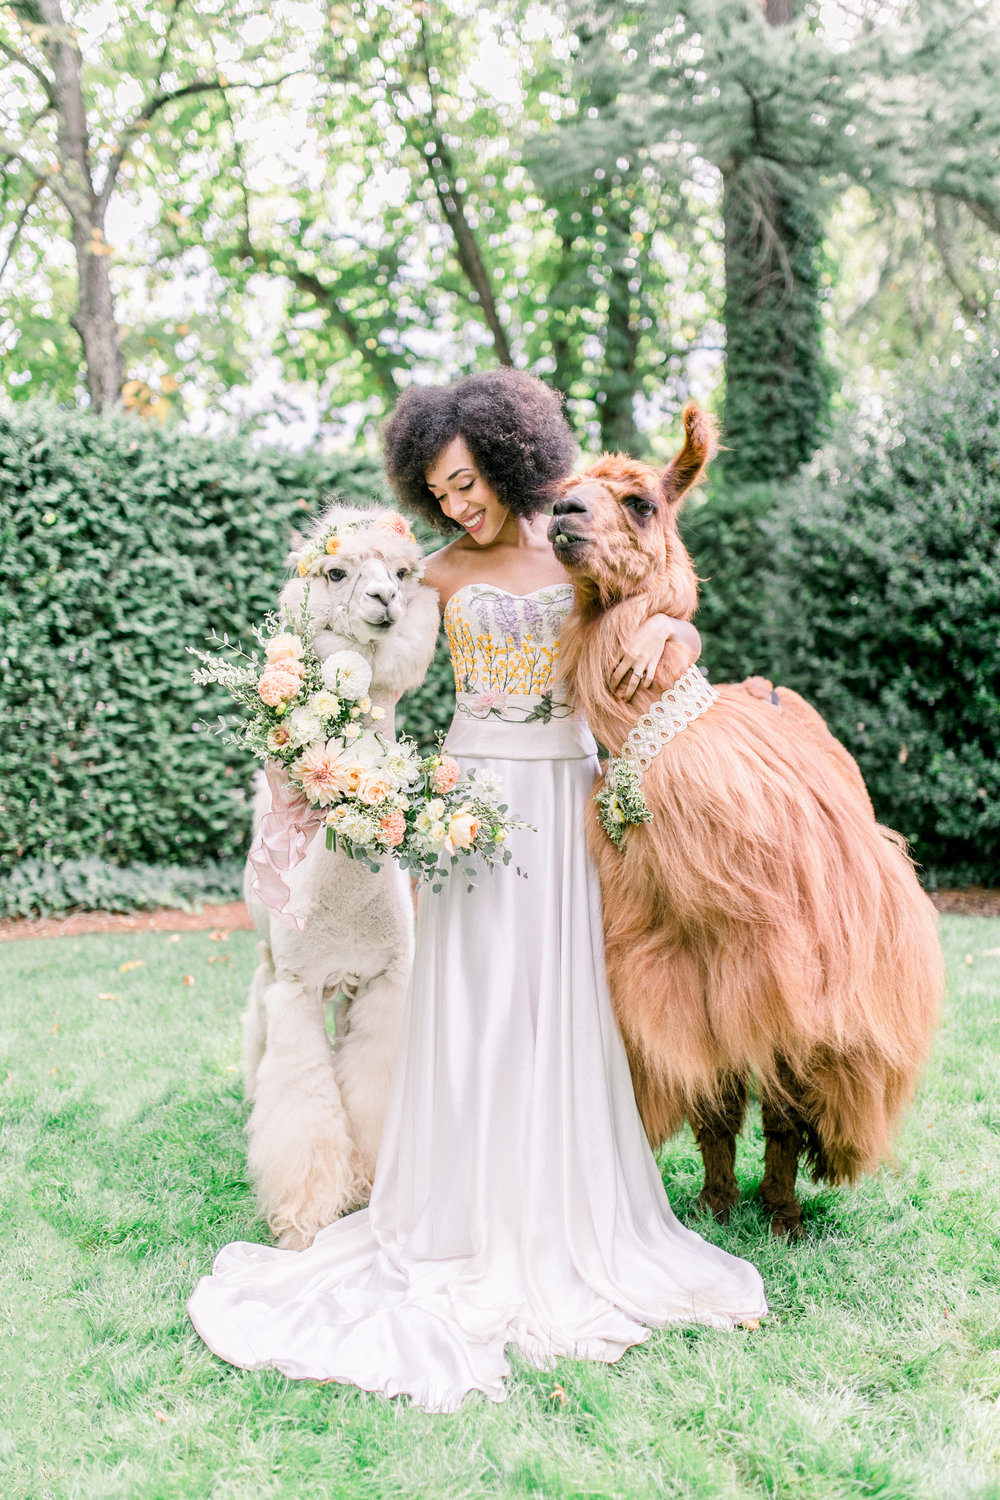 Whimsical Garden Wedding with Llamas. Photo by Kirsten Wilson Photography. Host: Styled Shoots Across America